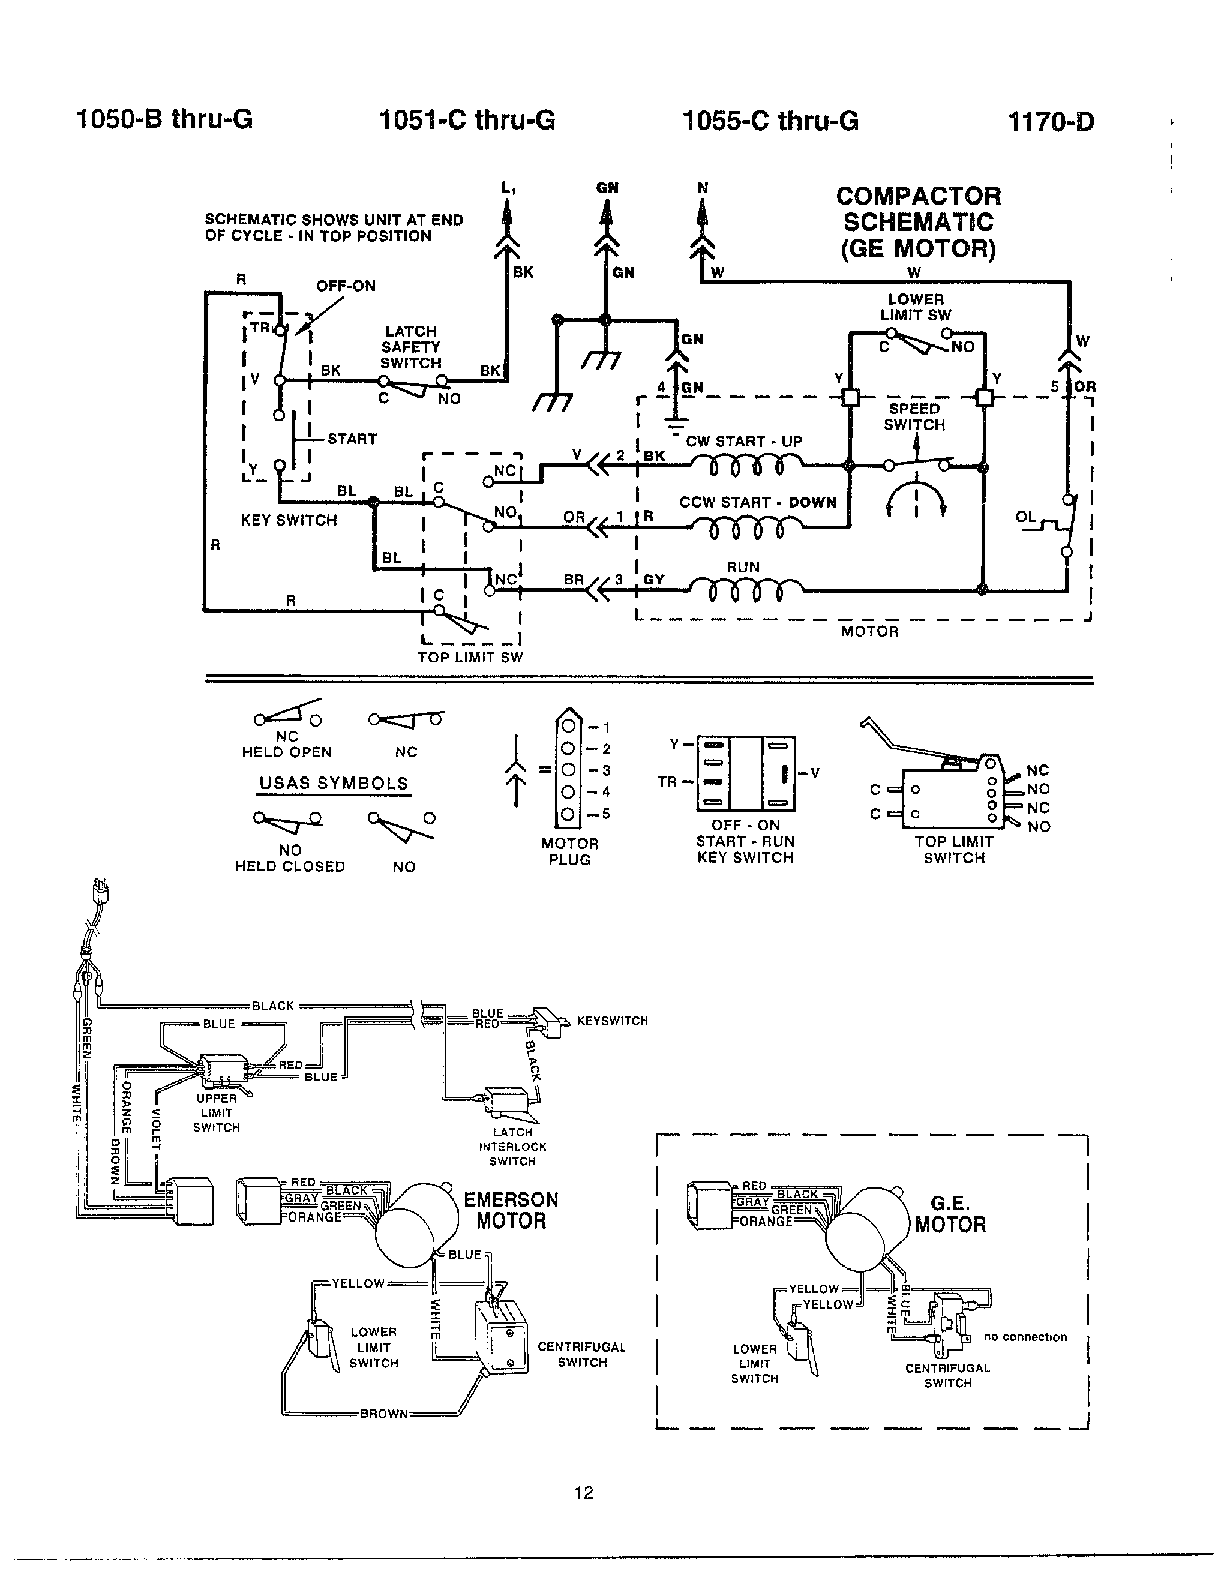 hight resolution of broan model 1050 d thru g compactors genuine parts rh searspartsdirect com whirlpool wiring diagrams broan wiring diagram for broan model c100